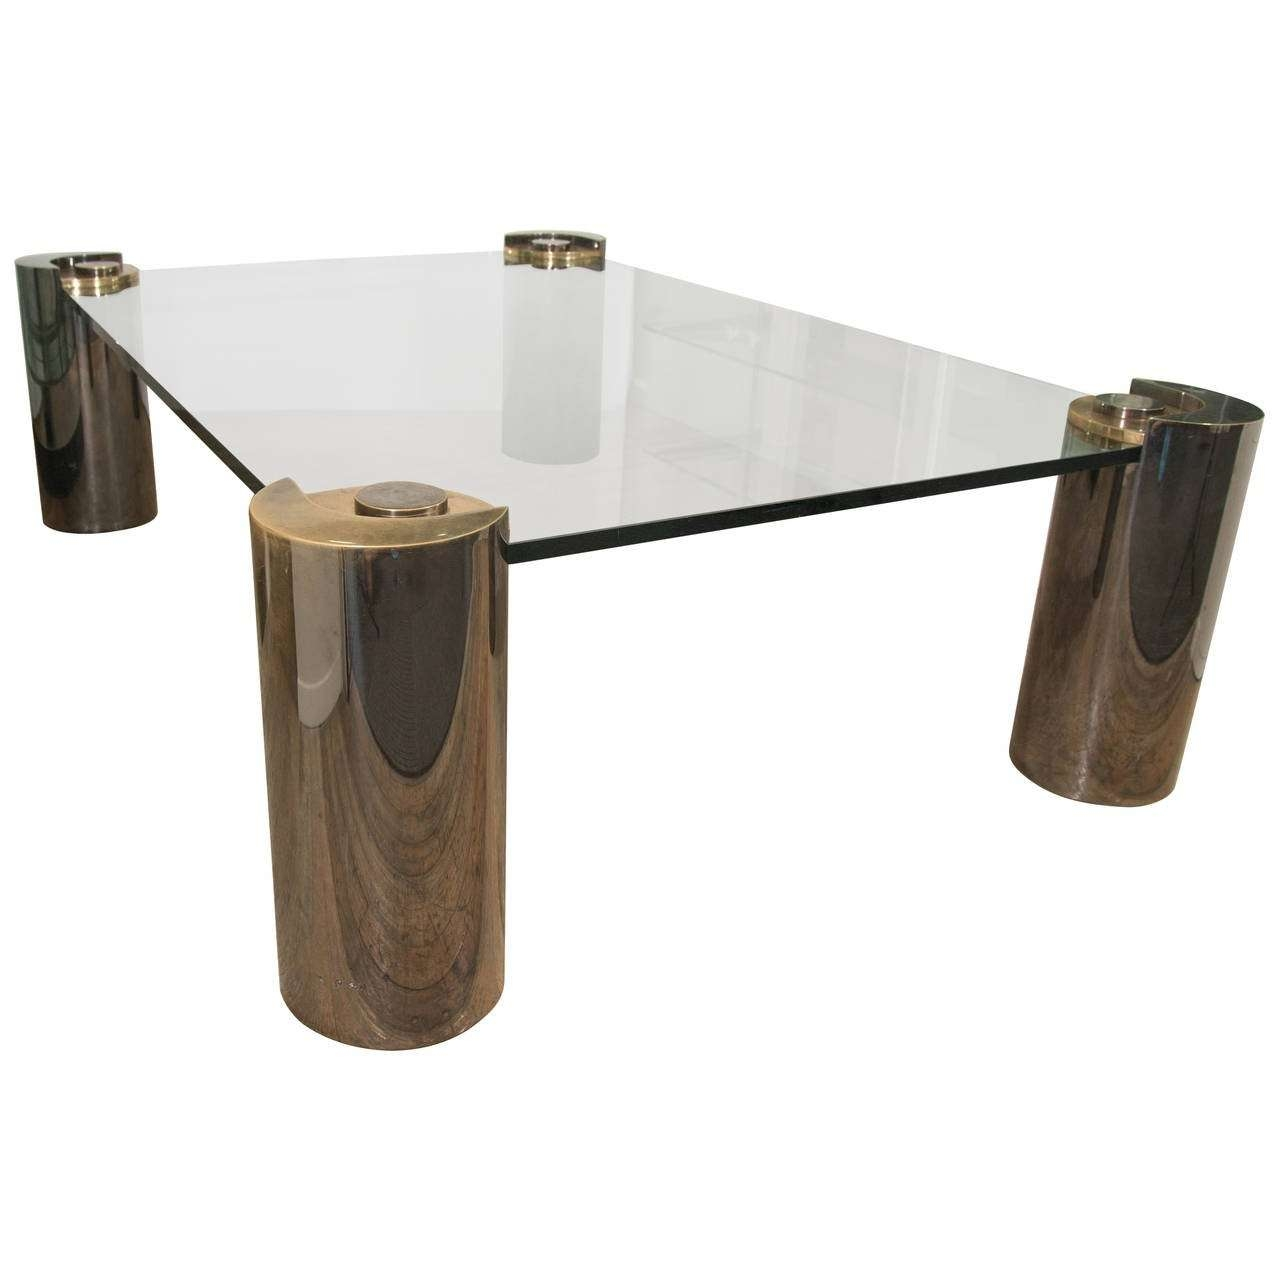 Karl Springer Glass Top Coffee Table With Cylindrical Chrome And With Regard To 2017 Coffee Tables With Chrome Legs (Gallery 14 of 20)